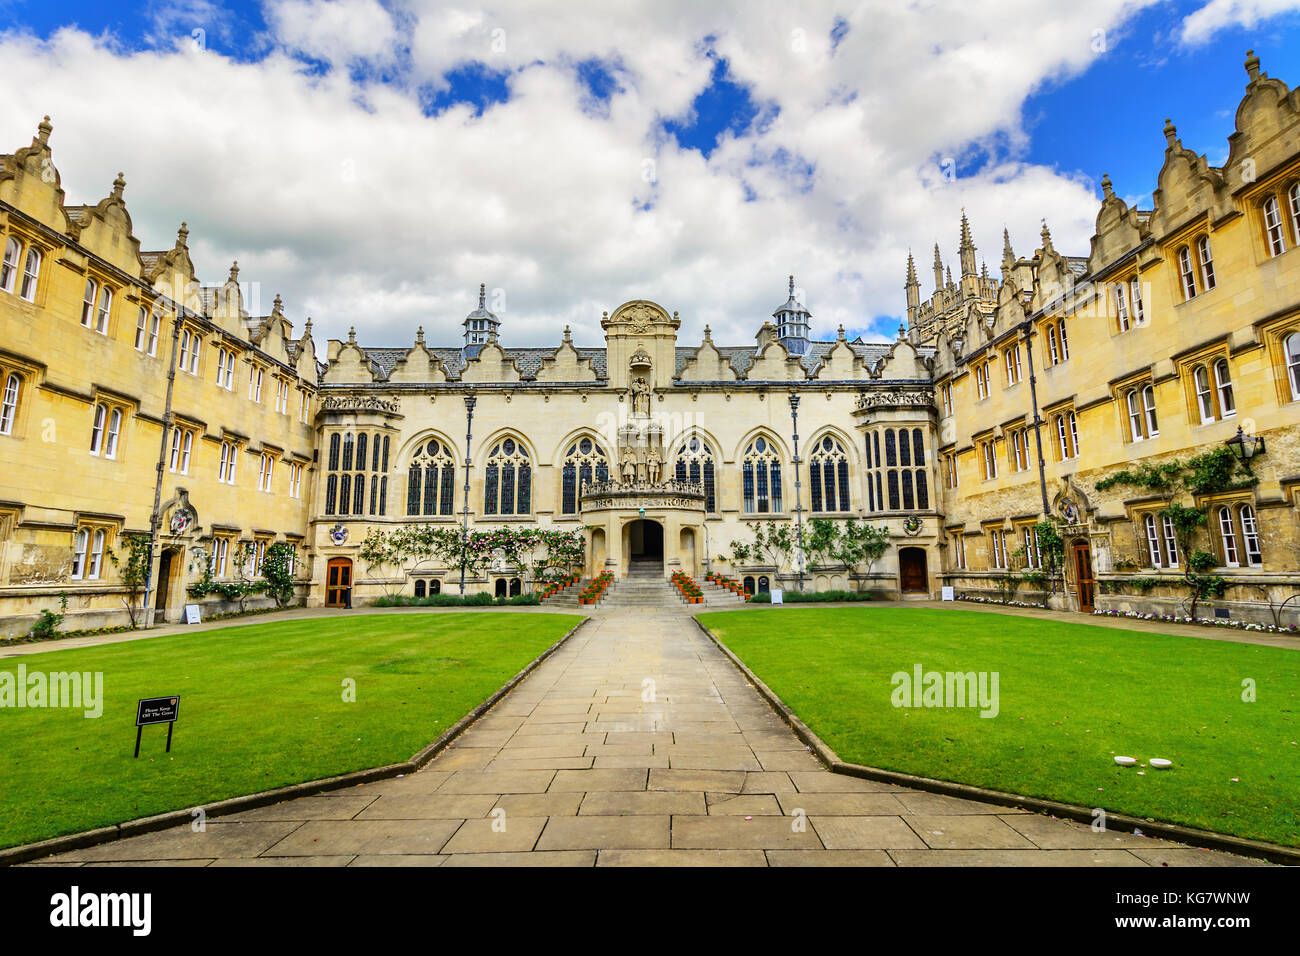 Oriel College, Oxford, England, United Kingdom - Stock Image